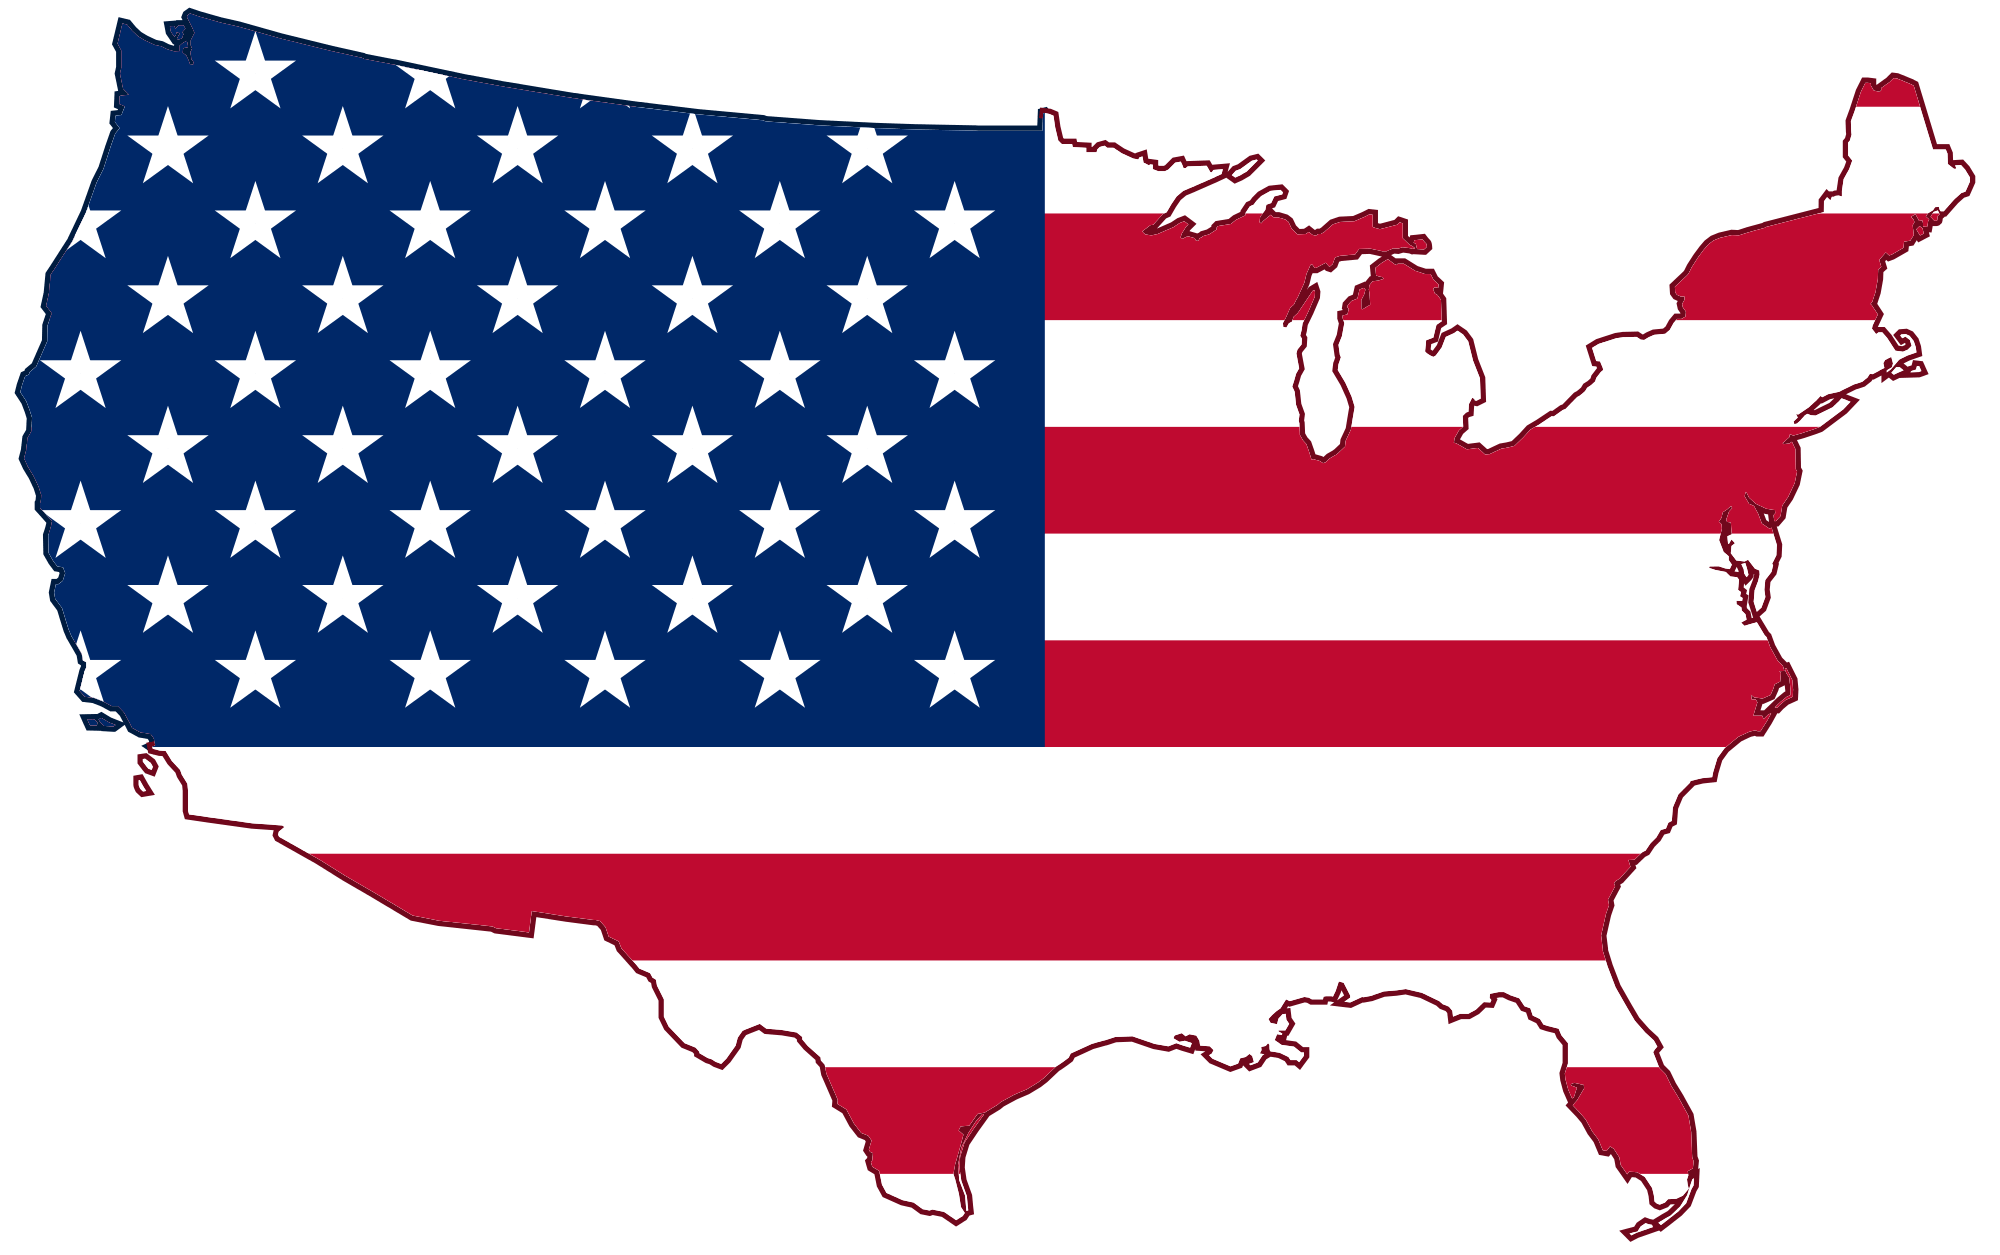 Us map clipart black image freeuse 28+ Collection of United States Clipart No Background | High quality ... image freeuse